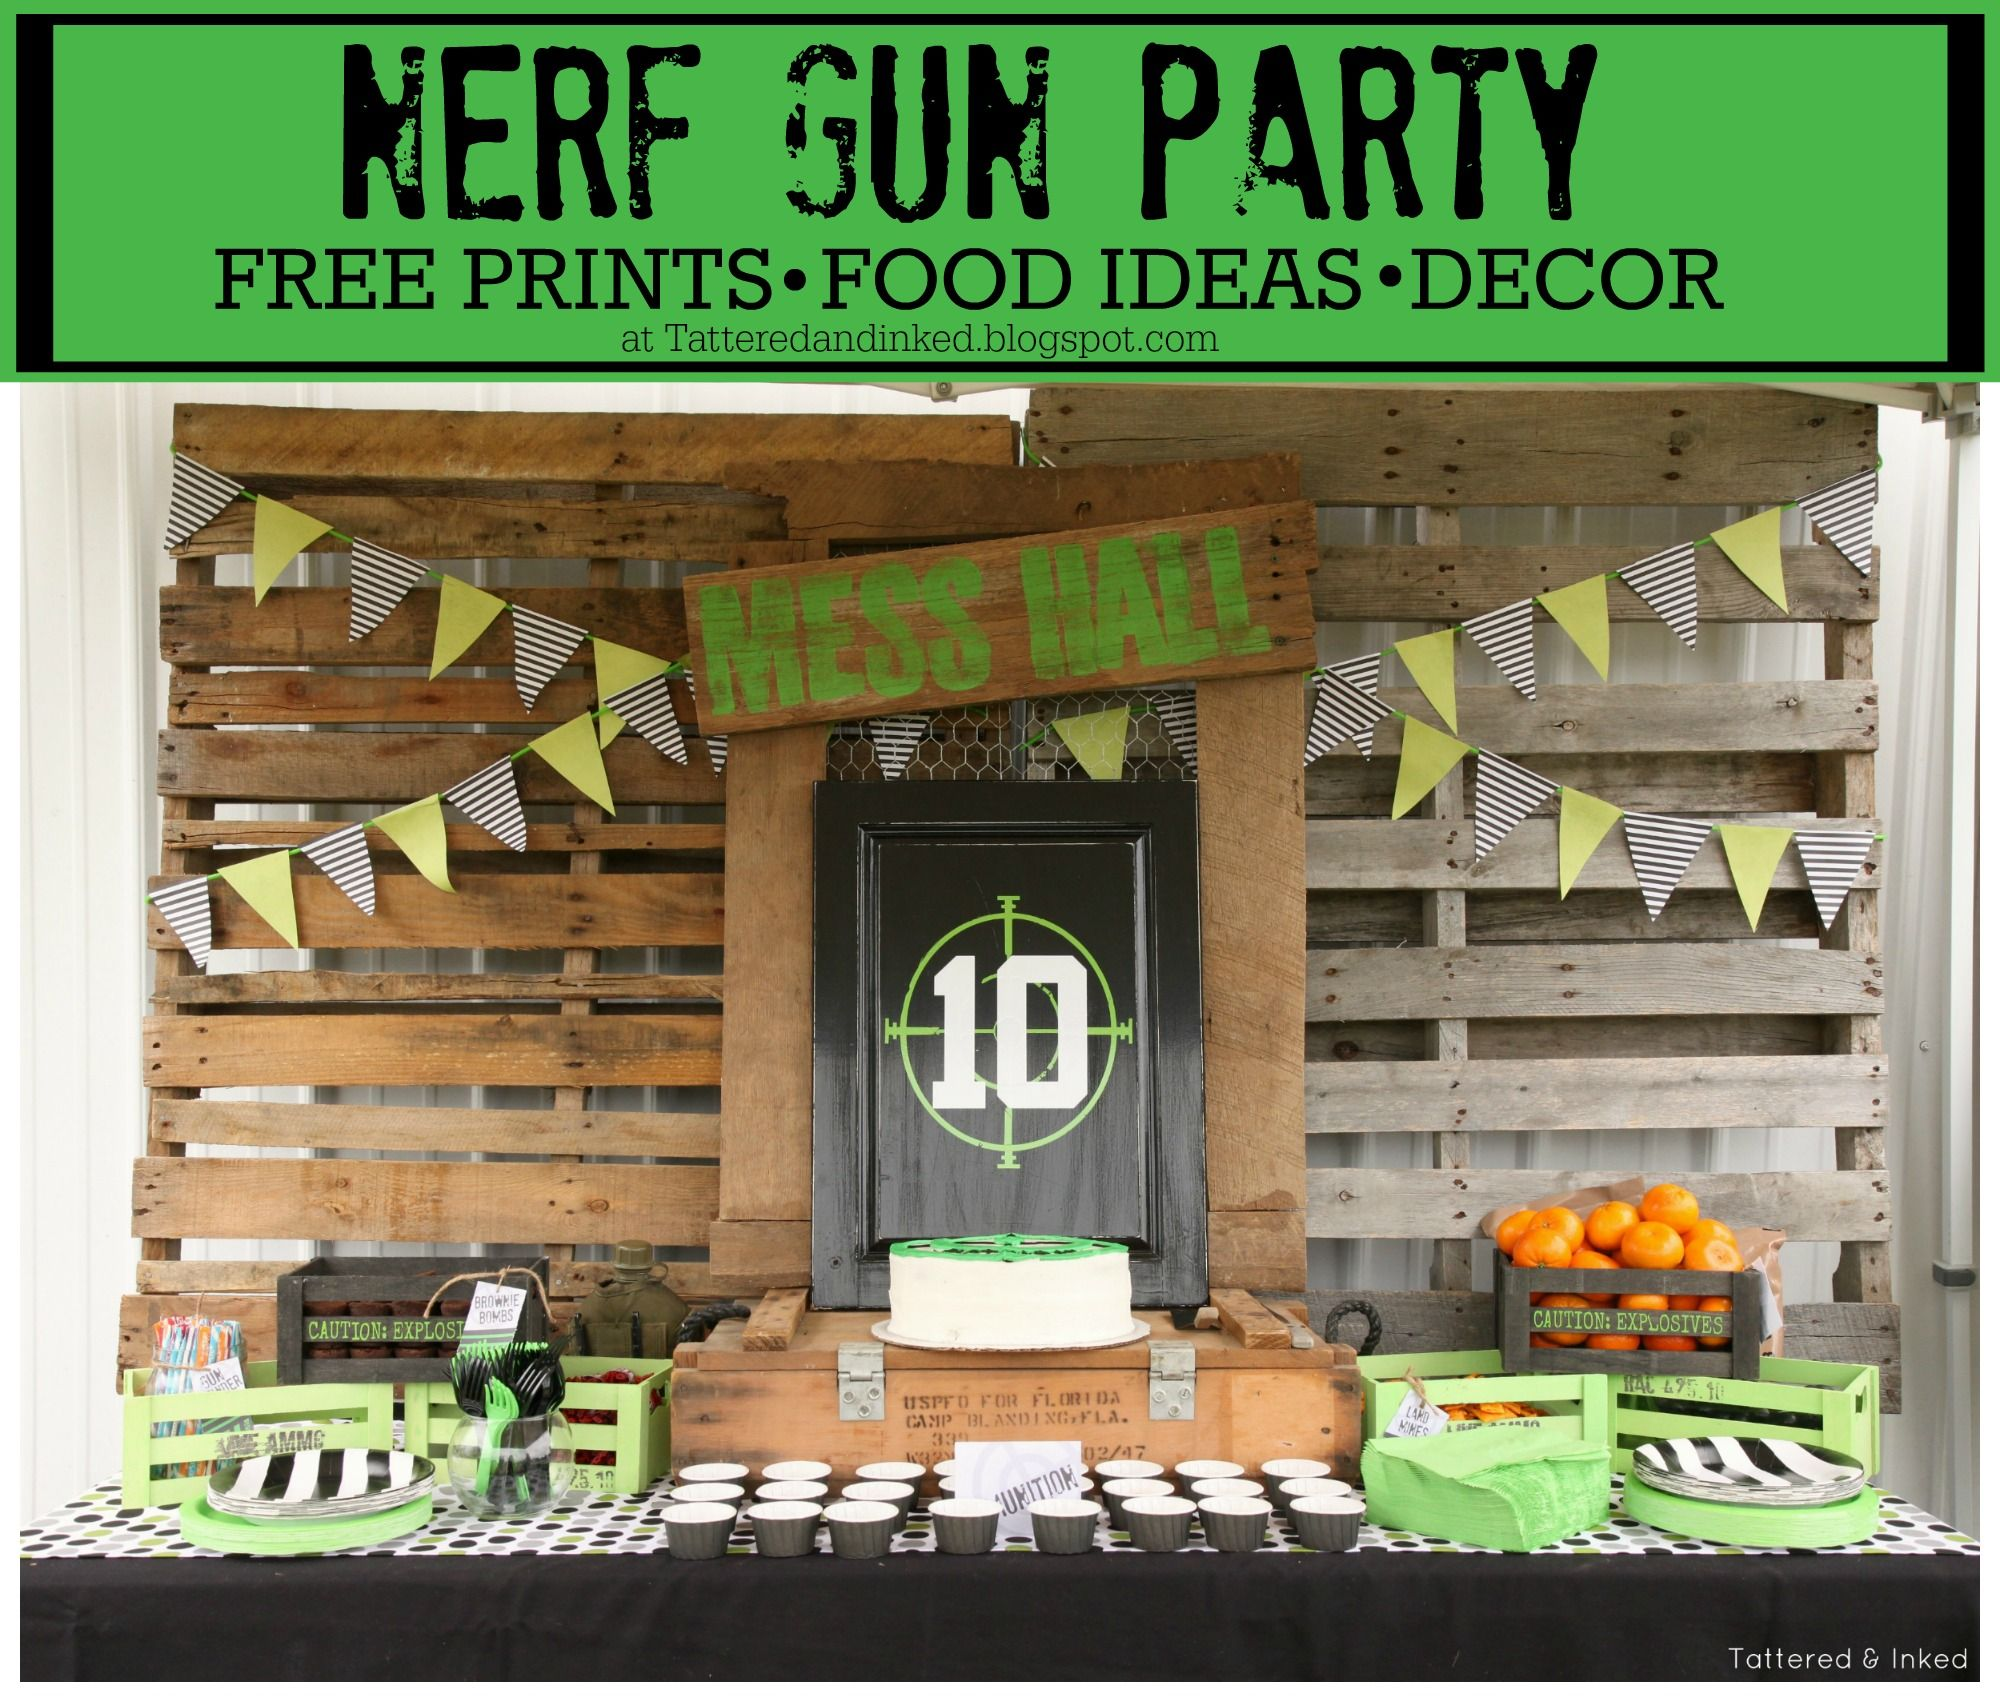 Nerf Gun Party ideas- Nerf Food ideas- DIY obstacle course